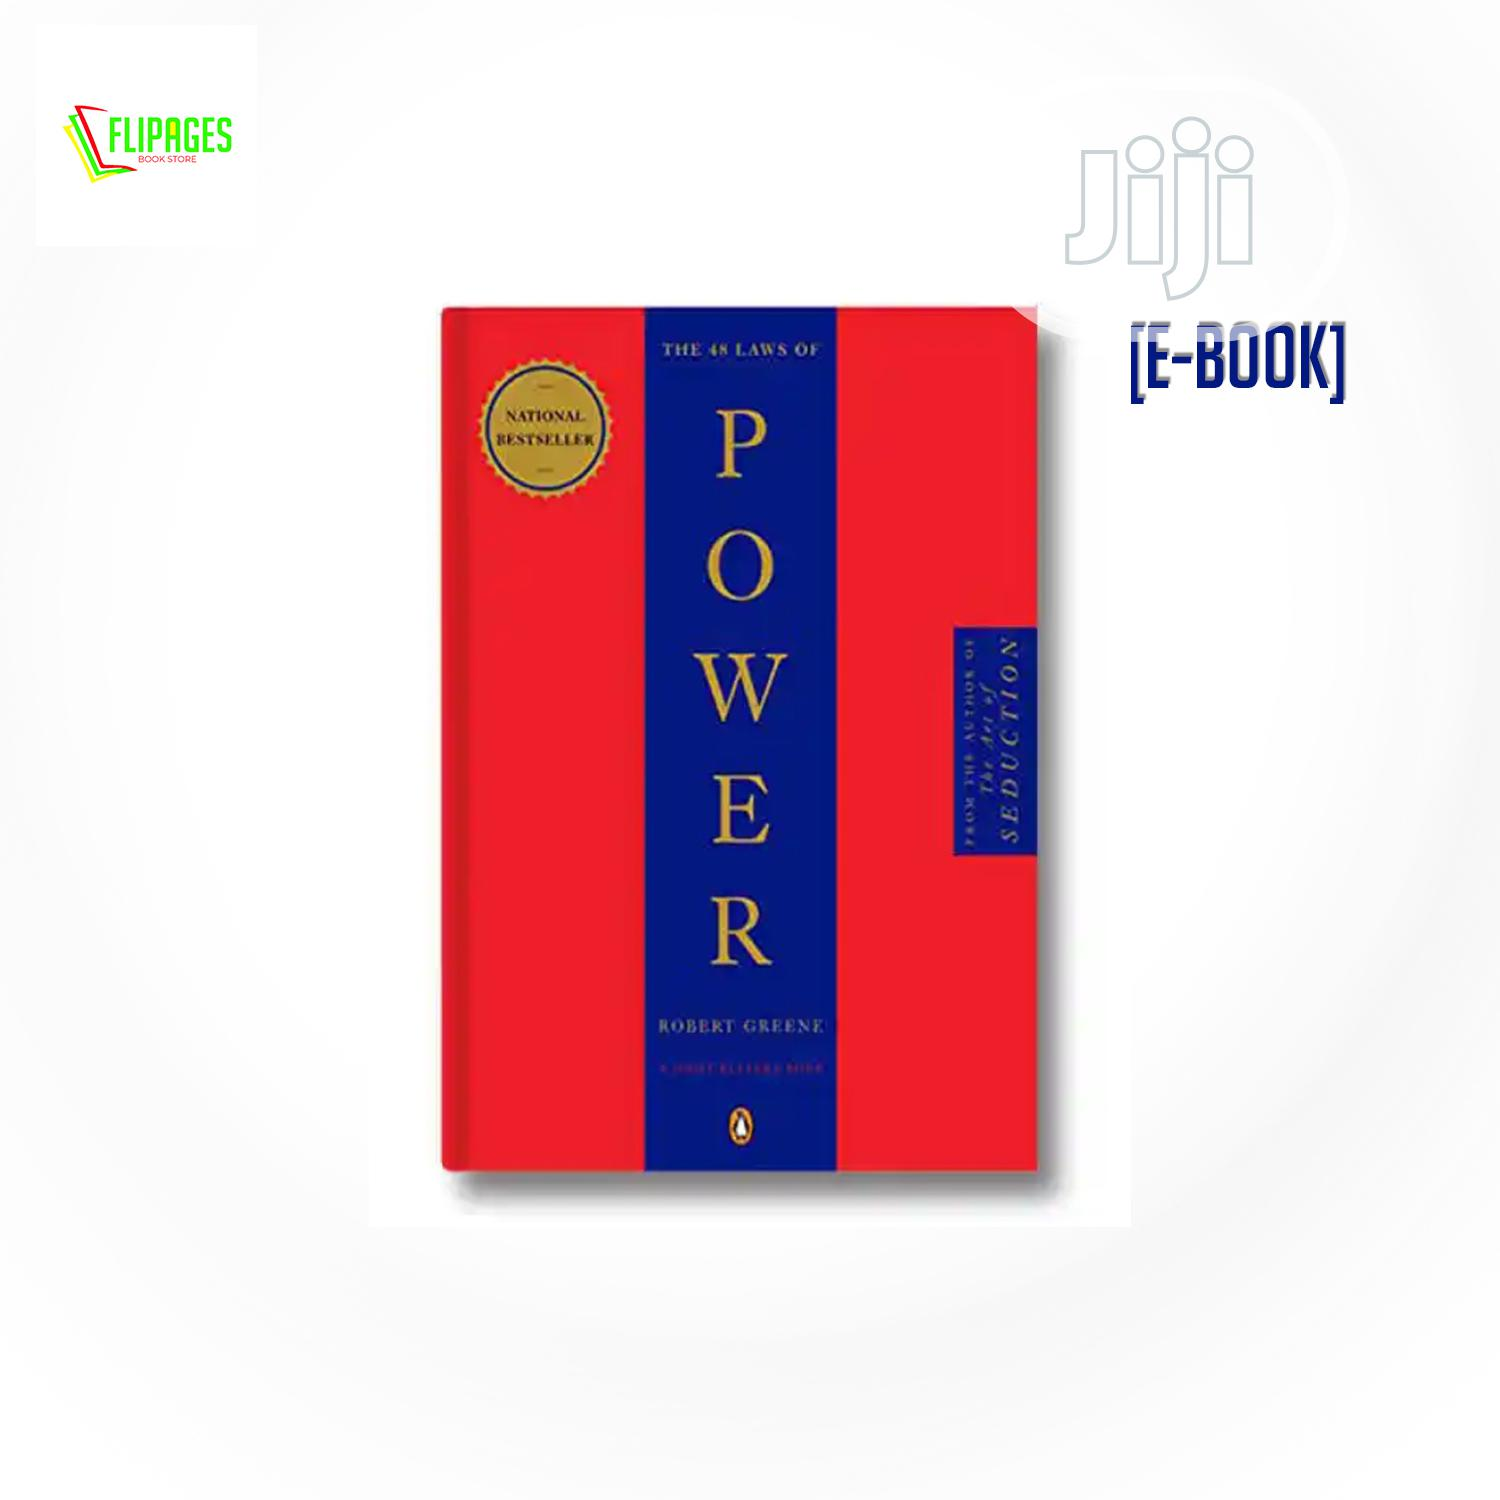 Archive: 48 Laws of Power by Robert Greene(Pdf)